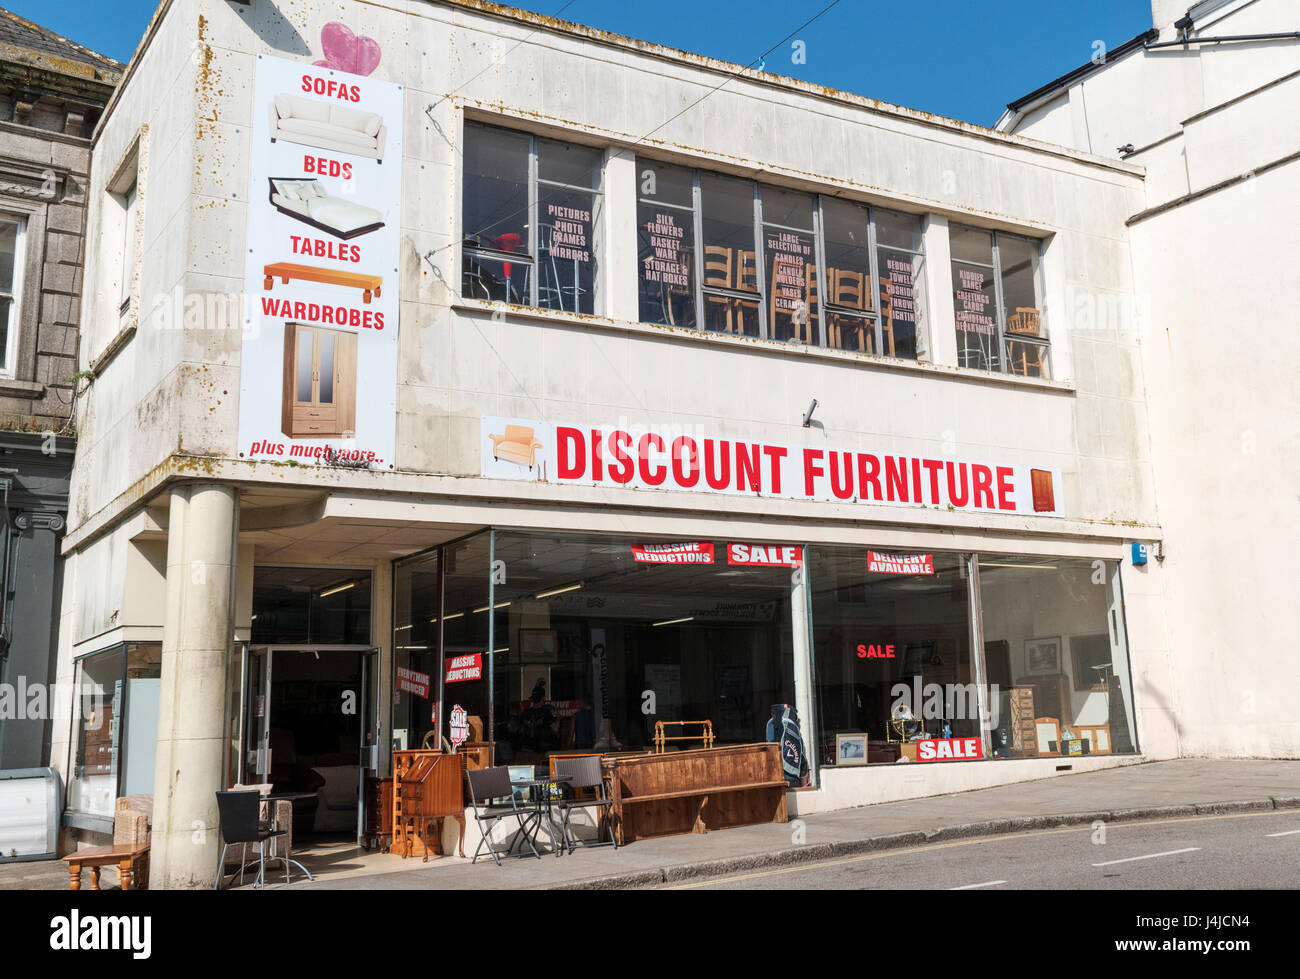 Un discount furniture store in penzance, Cornwall, Regno Unito Immagini Stock